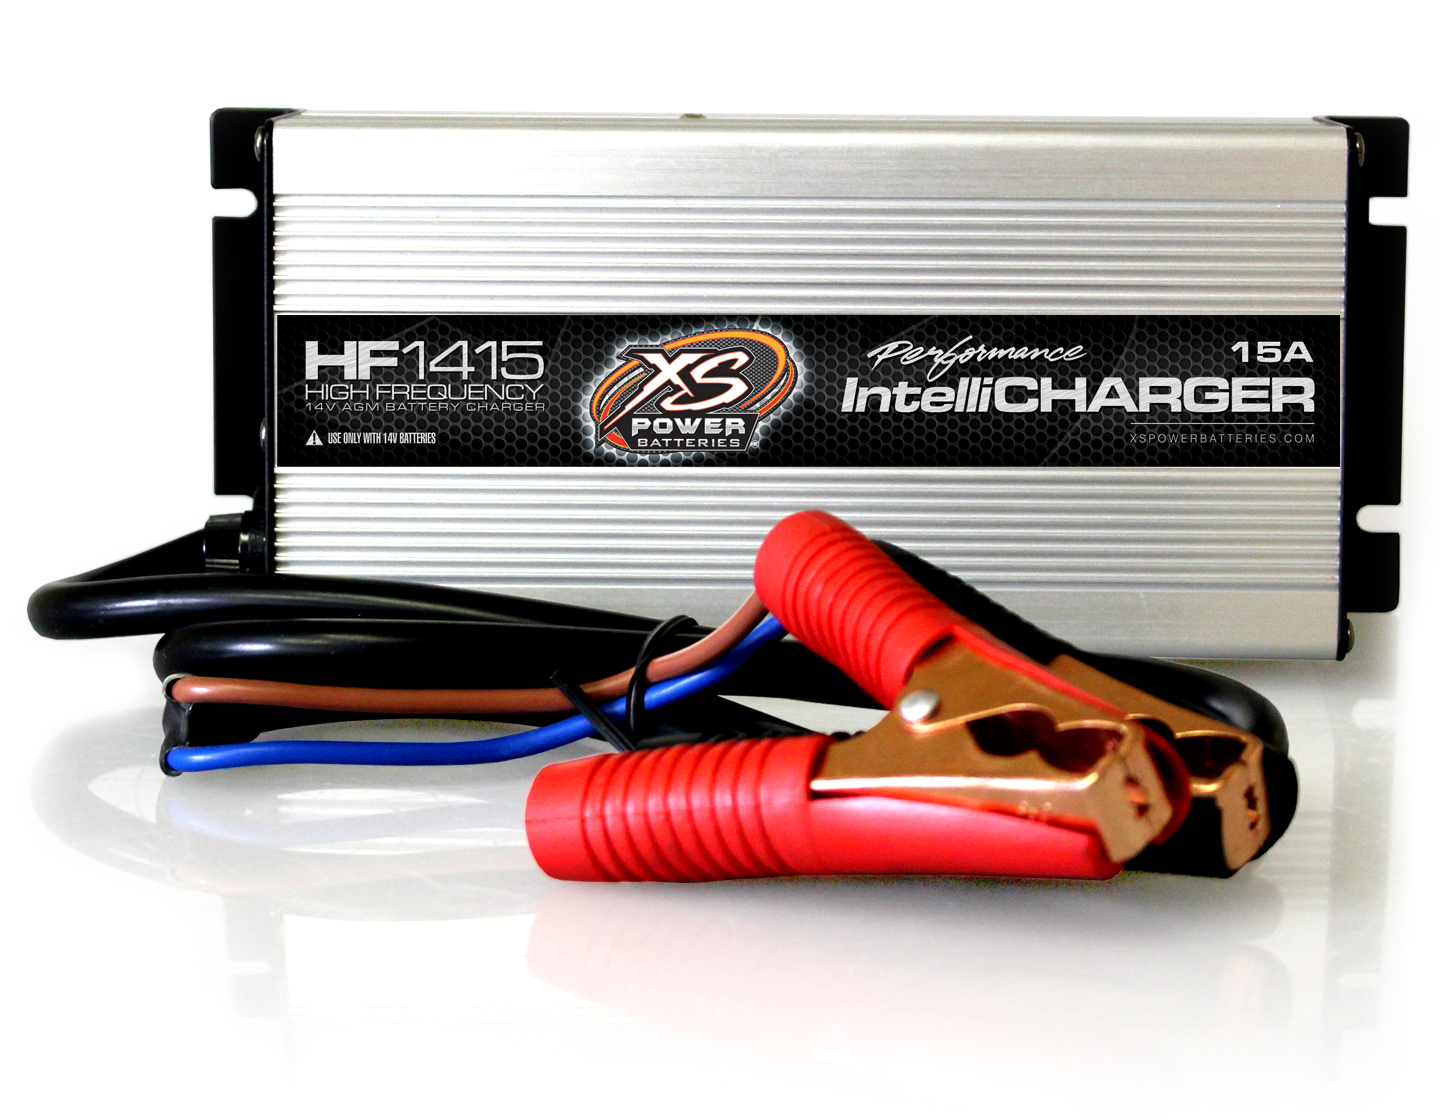 XS Power HF1415 14V AGM IntellicCharger Battery Charger For Cars